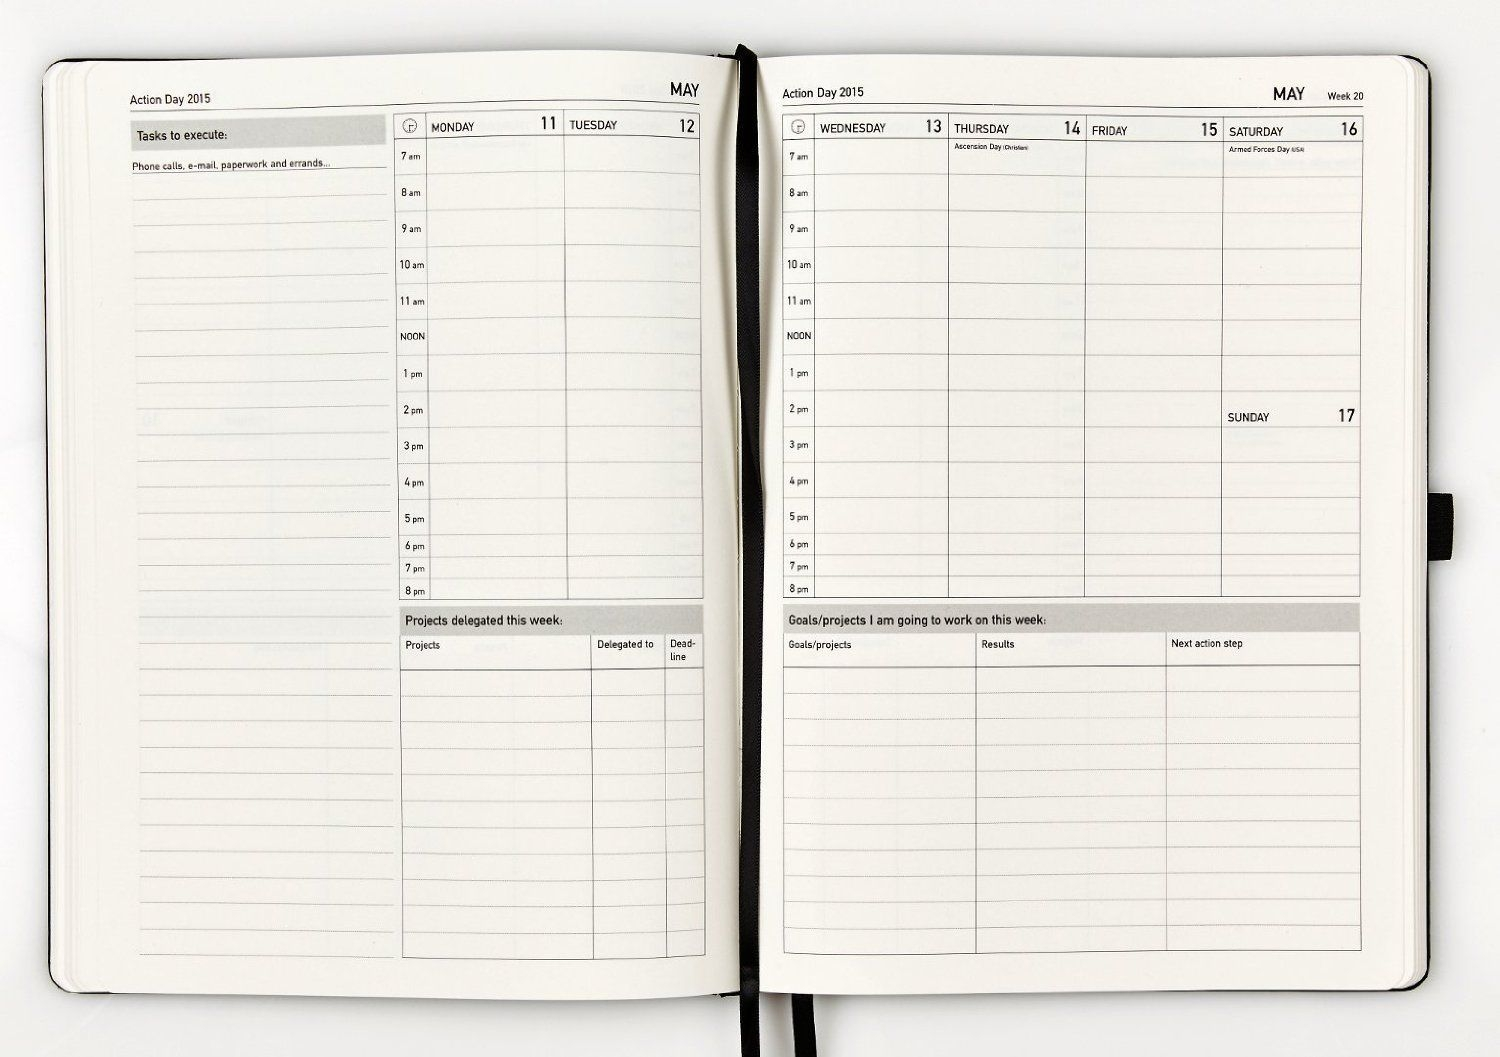 Amazon : Action Day Weekly Planner 2015 - Size 8X11